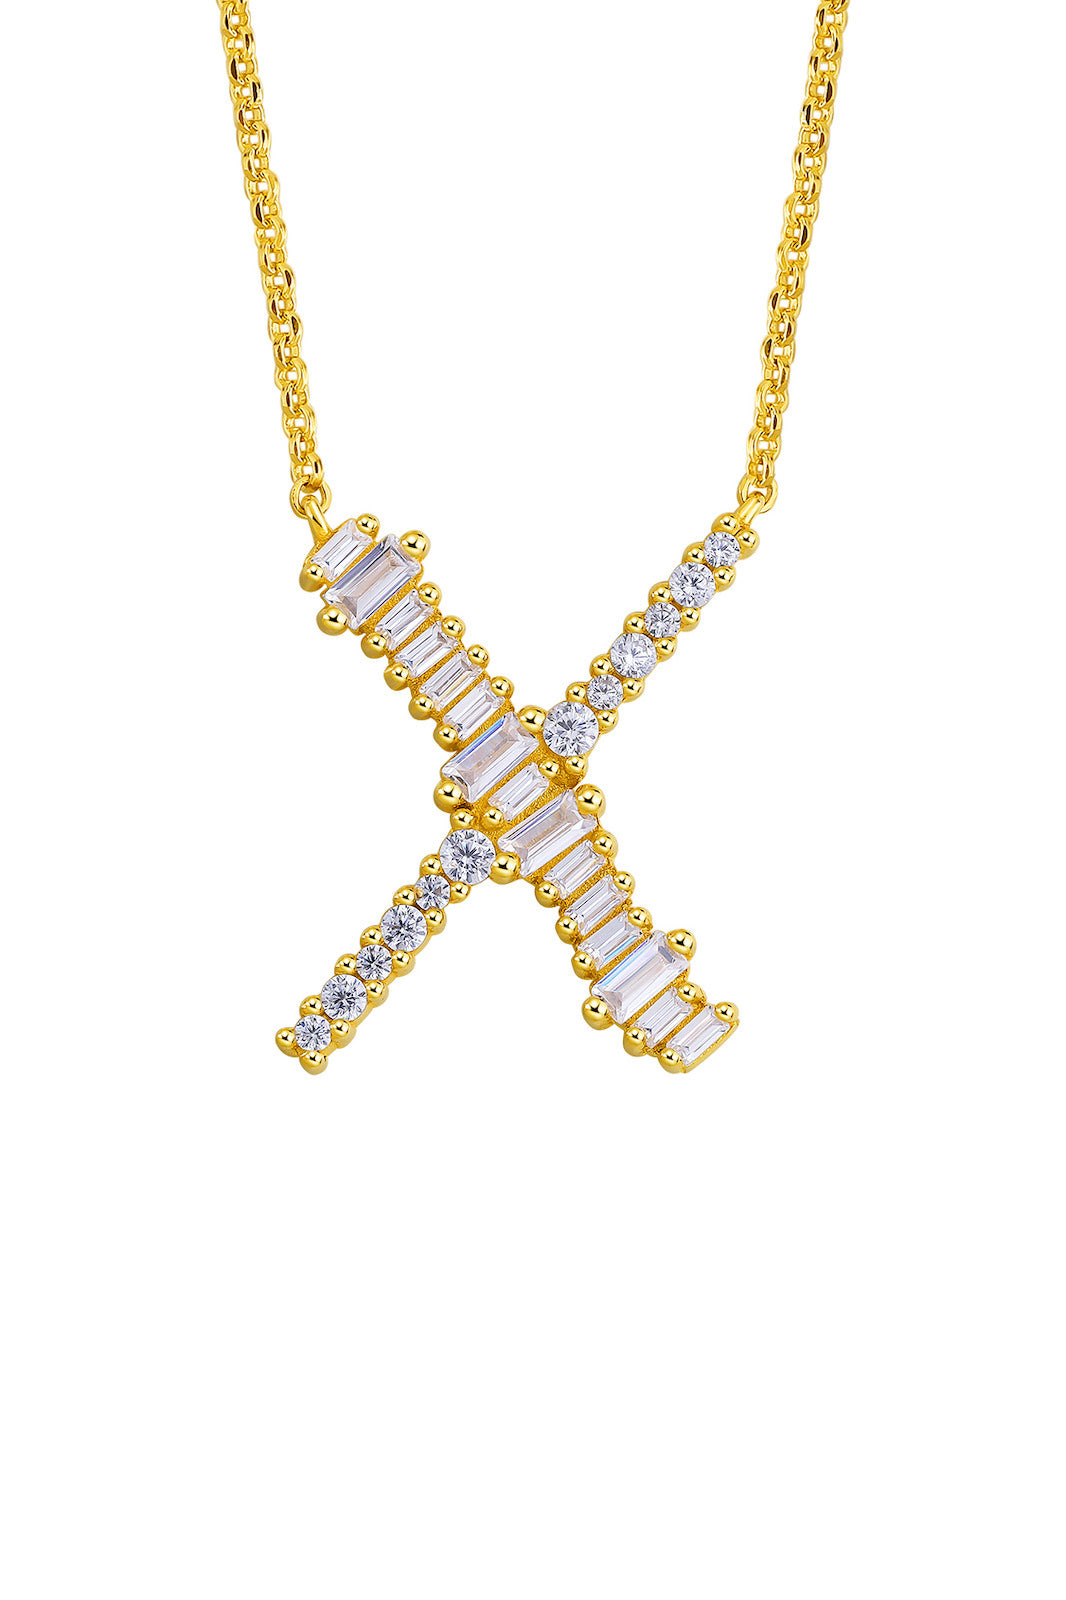 Gold Plated Sterling Silver Initial Necklace - Letter X Detail